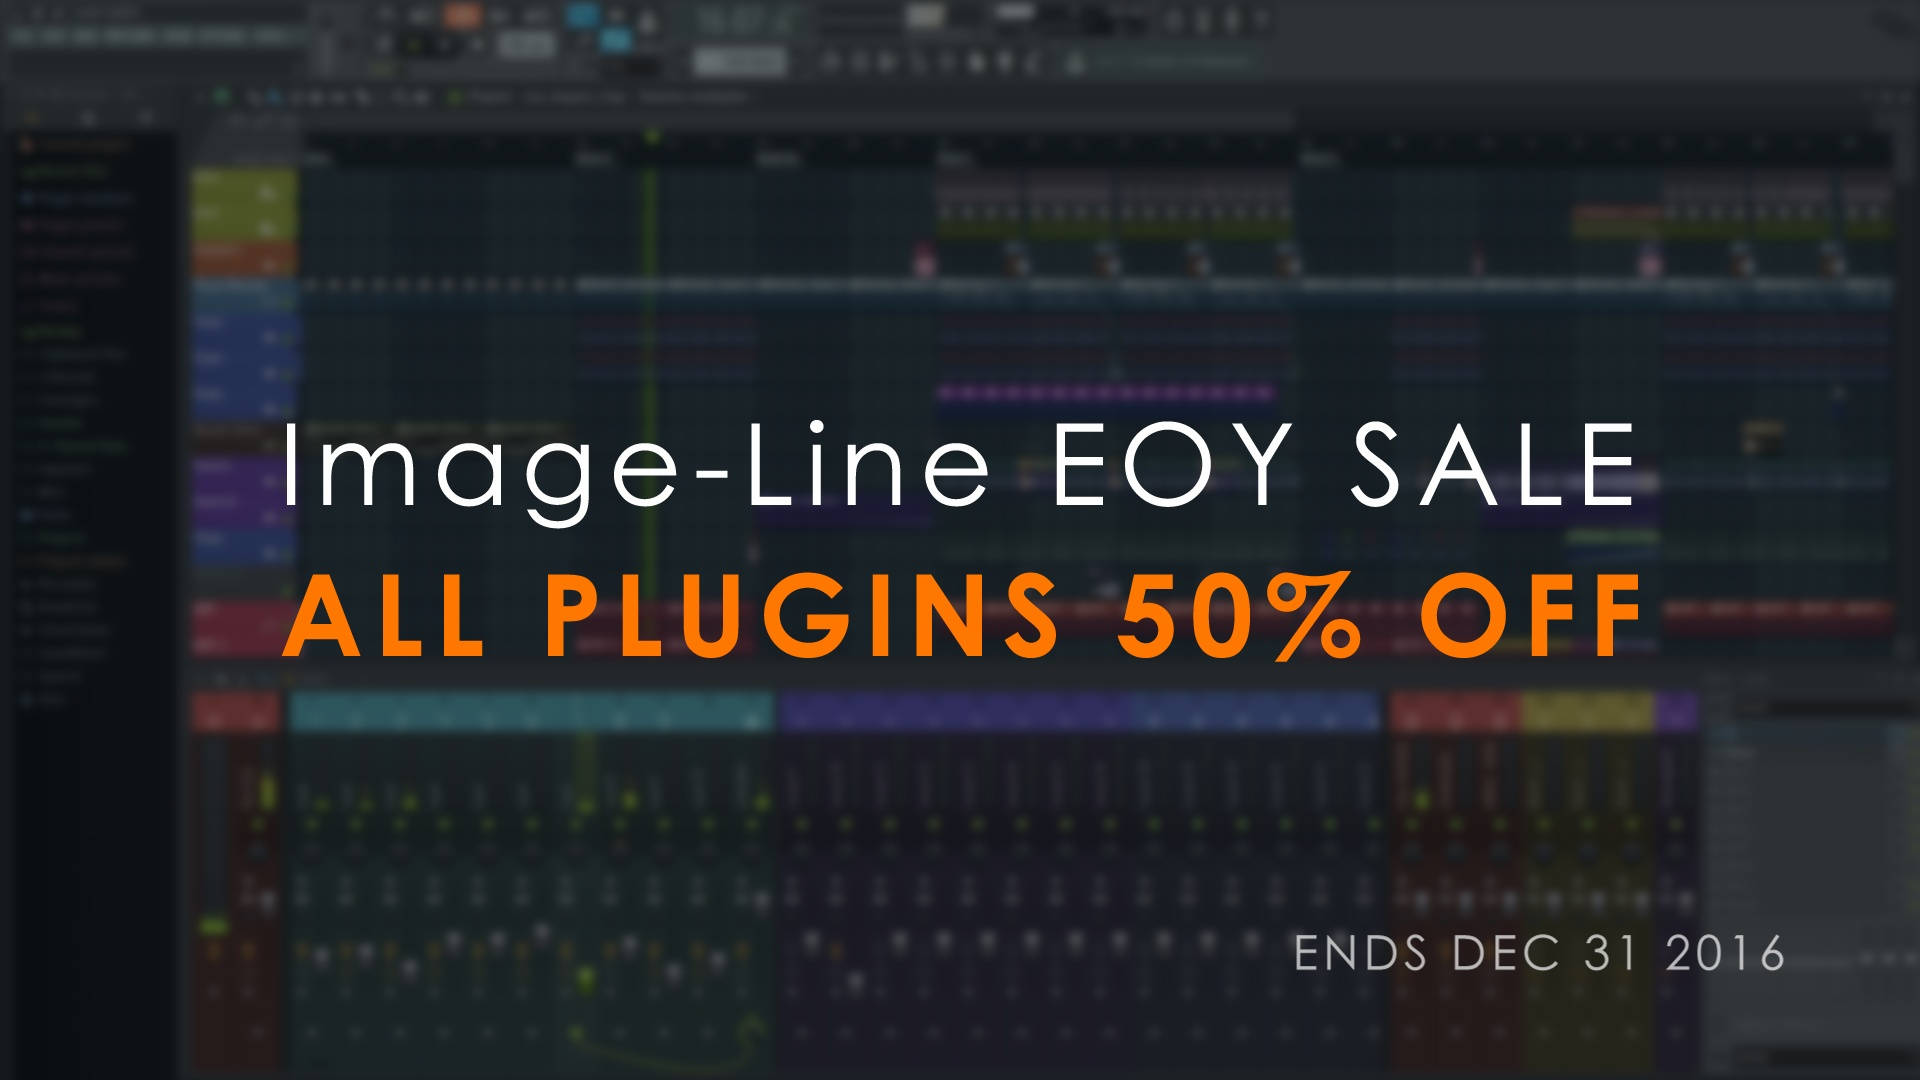 ALL PLUGINS HALF PRICE*